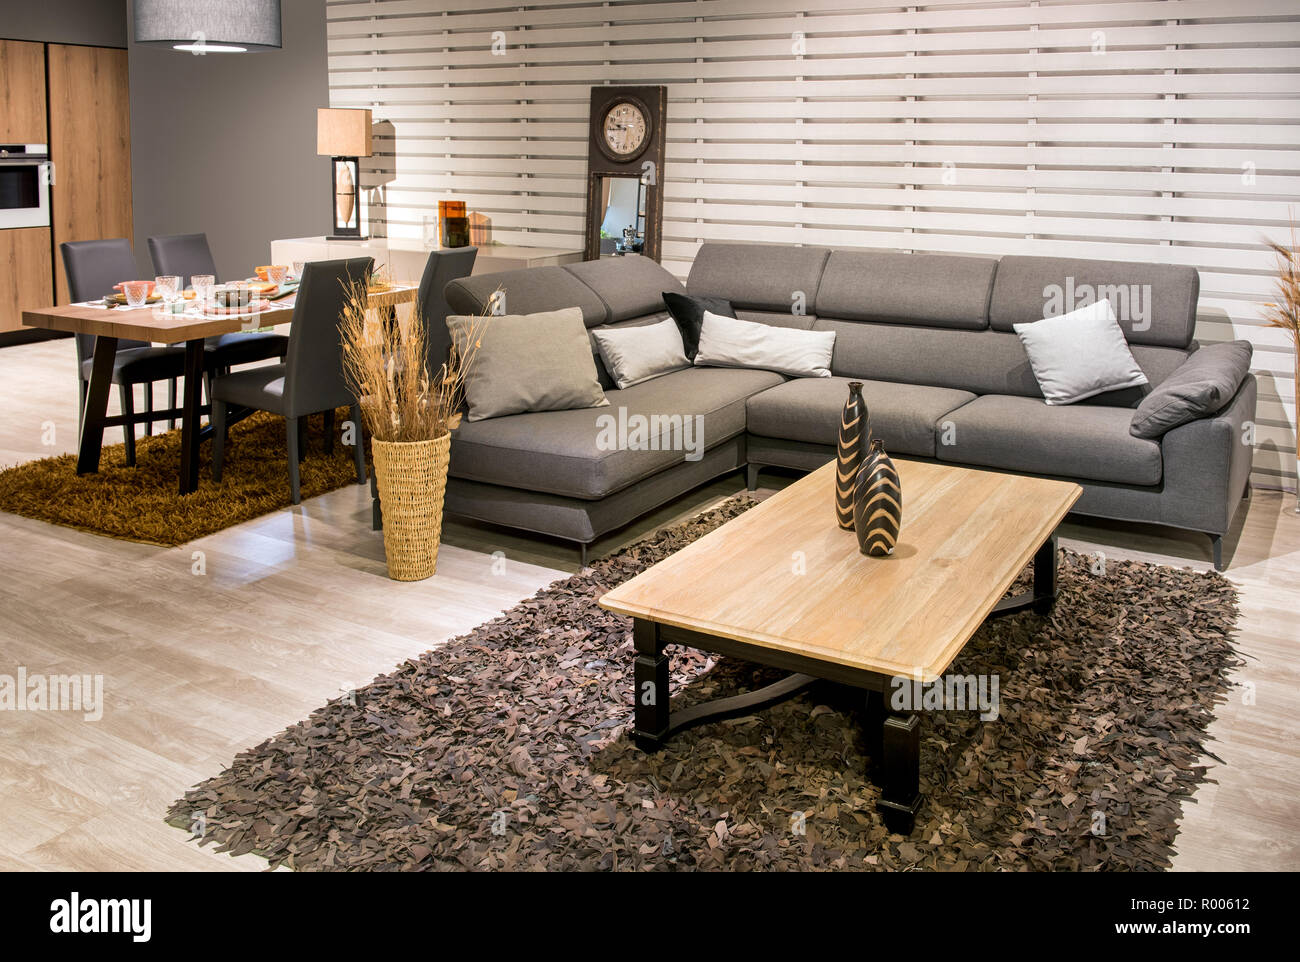 Spacious open plan kitchen dining room and living room interior with grey upholstered lounge suite rug set table and wooden floor in a modern house